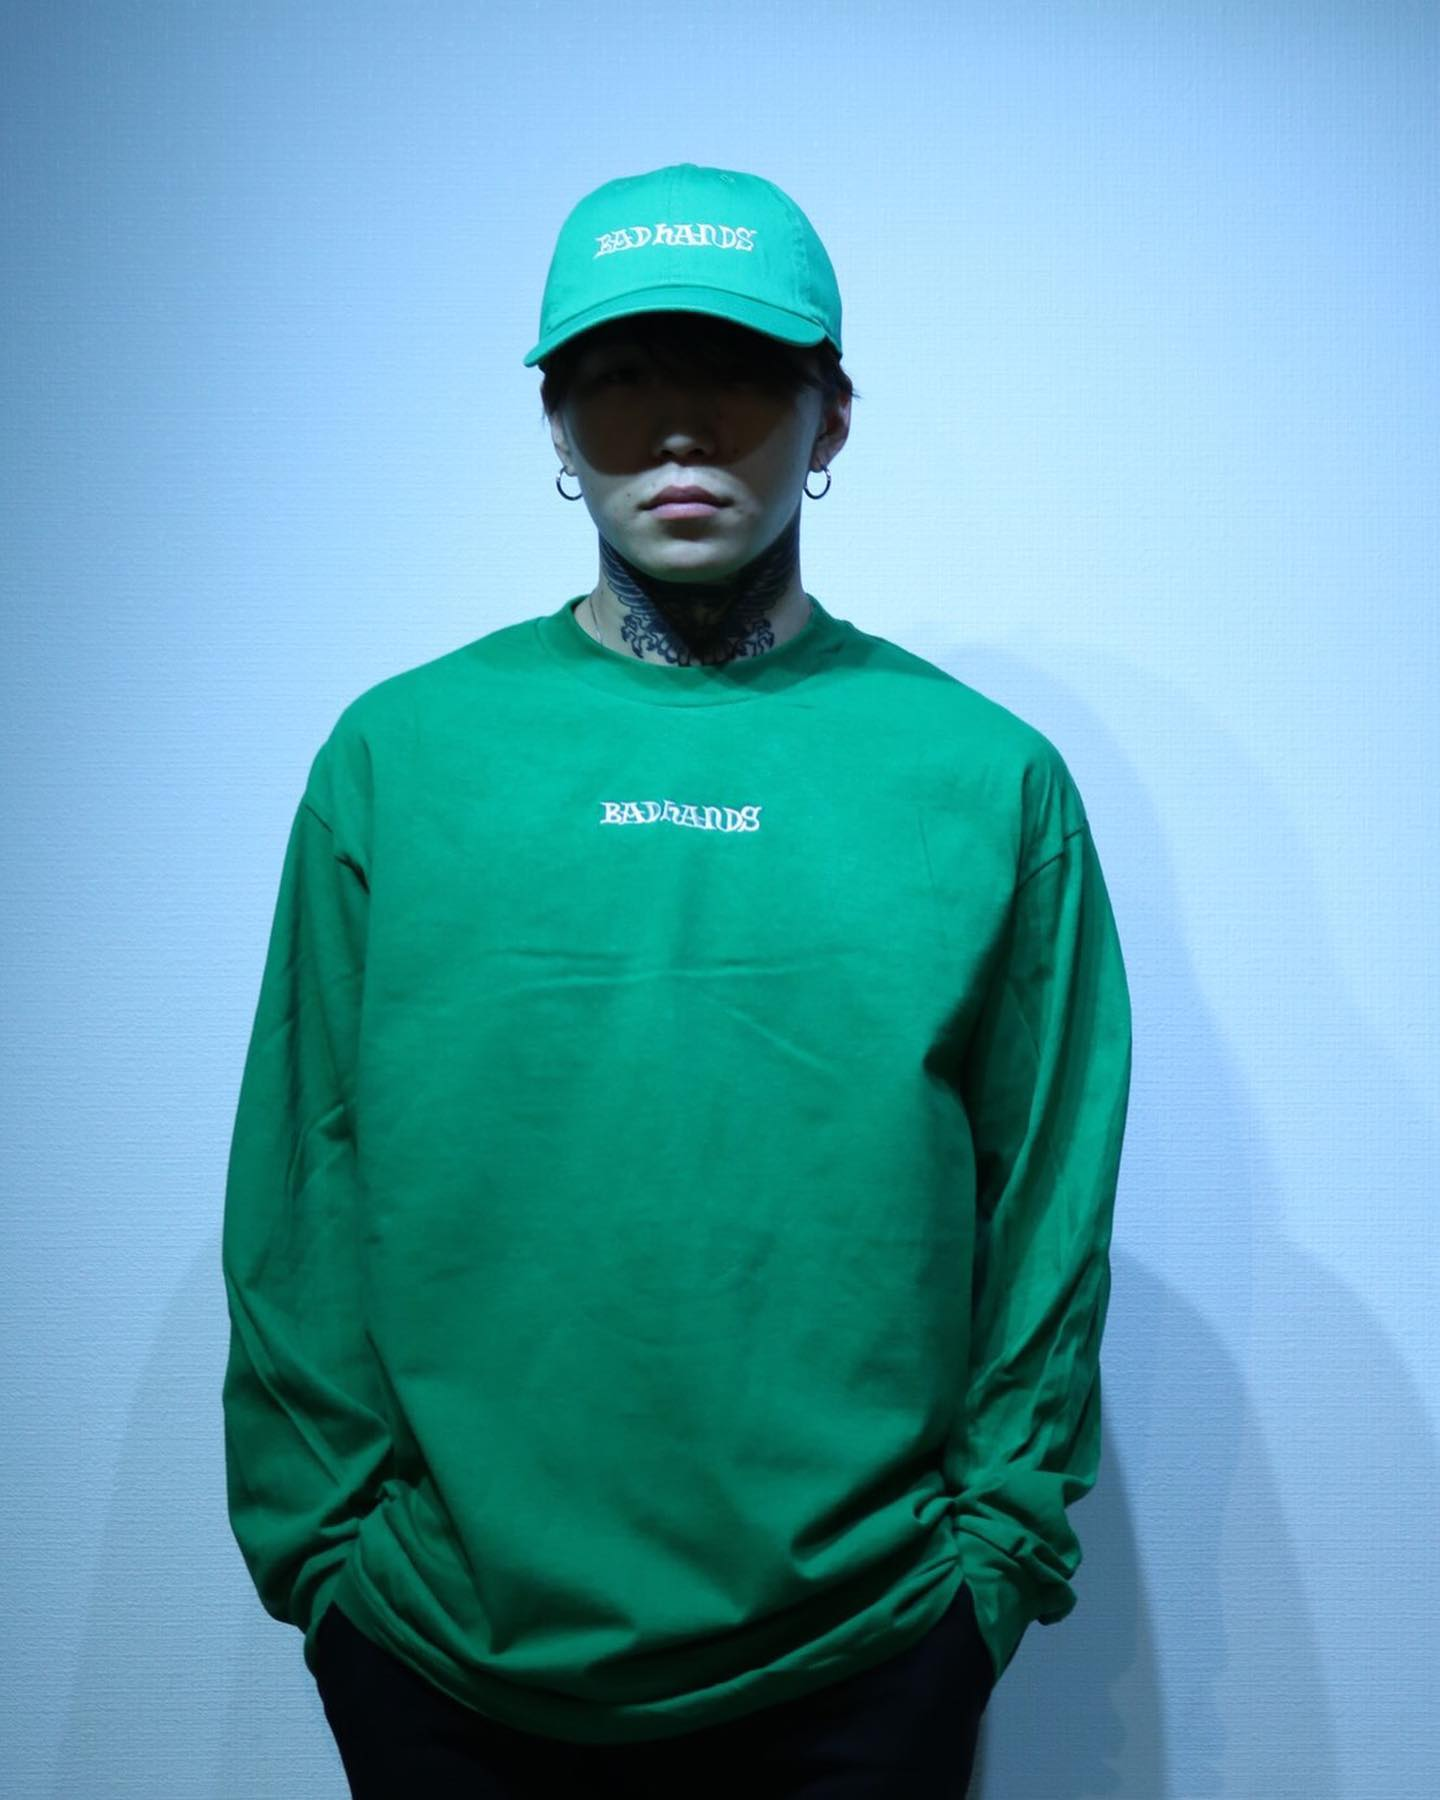 BAD HANDS 2020 L/S Greenの写真